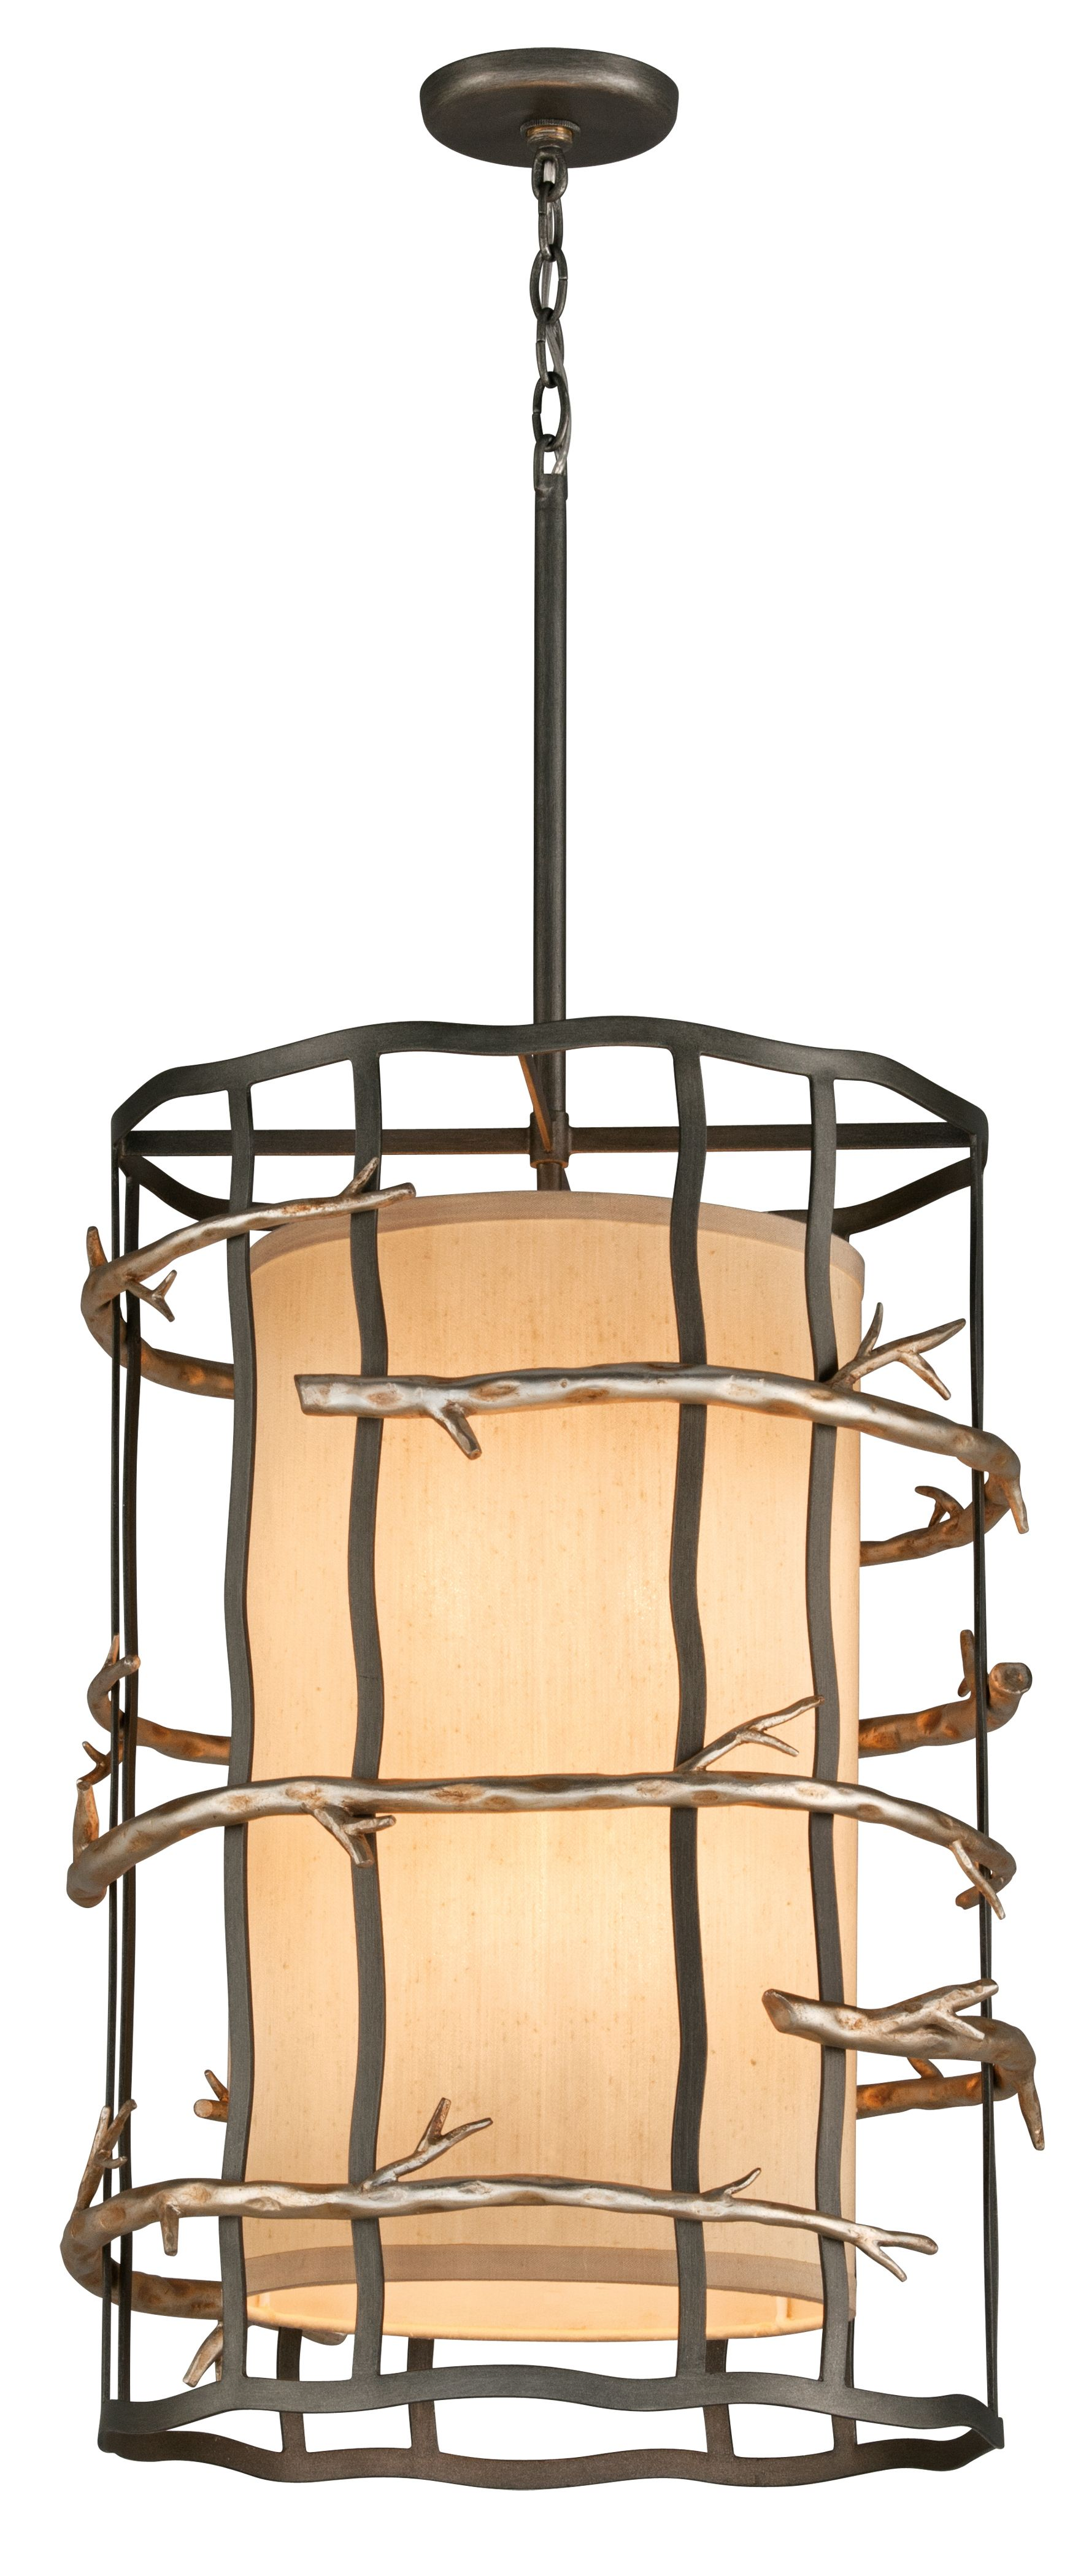 troy lighting adirondack 6 light pendant entry small cool